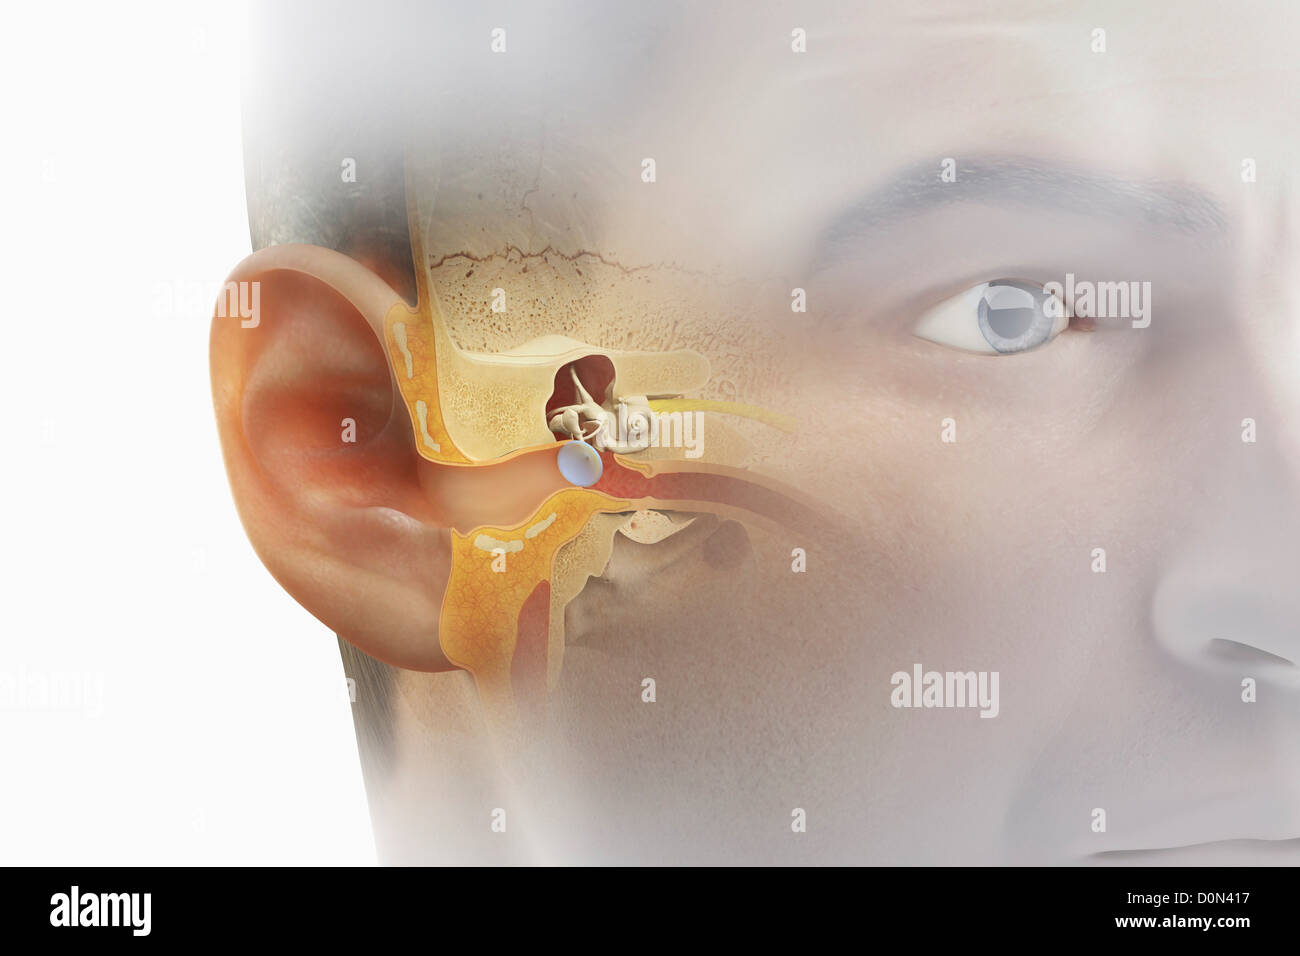 Human Ear Canal Www Pixshark Com Images Galleries With